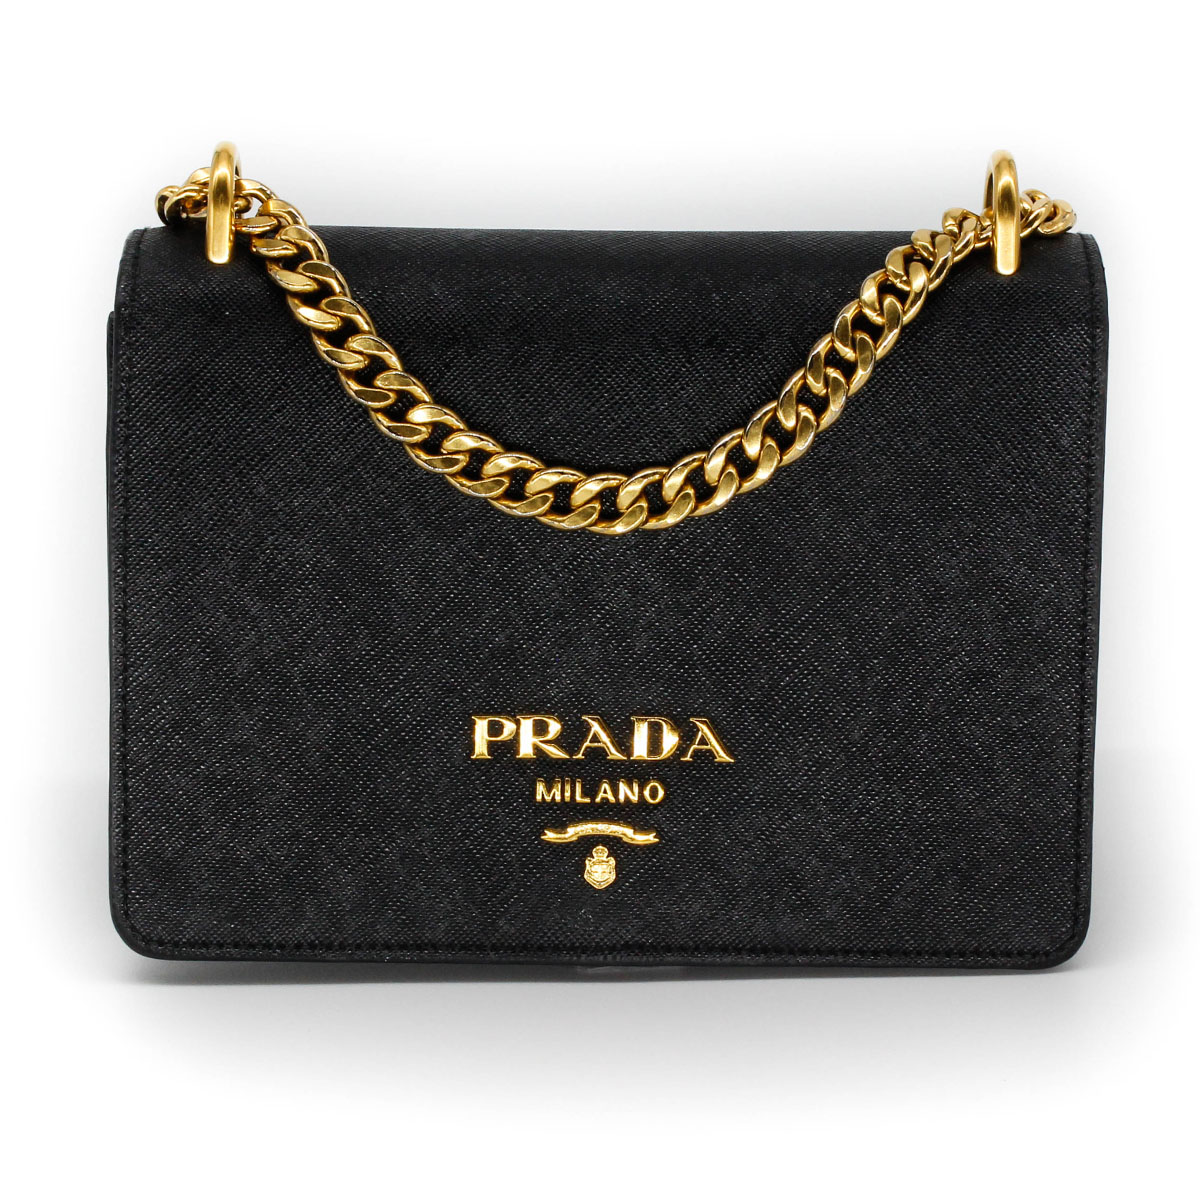 prada flap bag in black with gold chain front